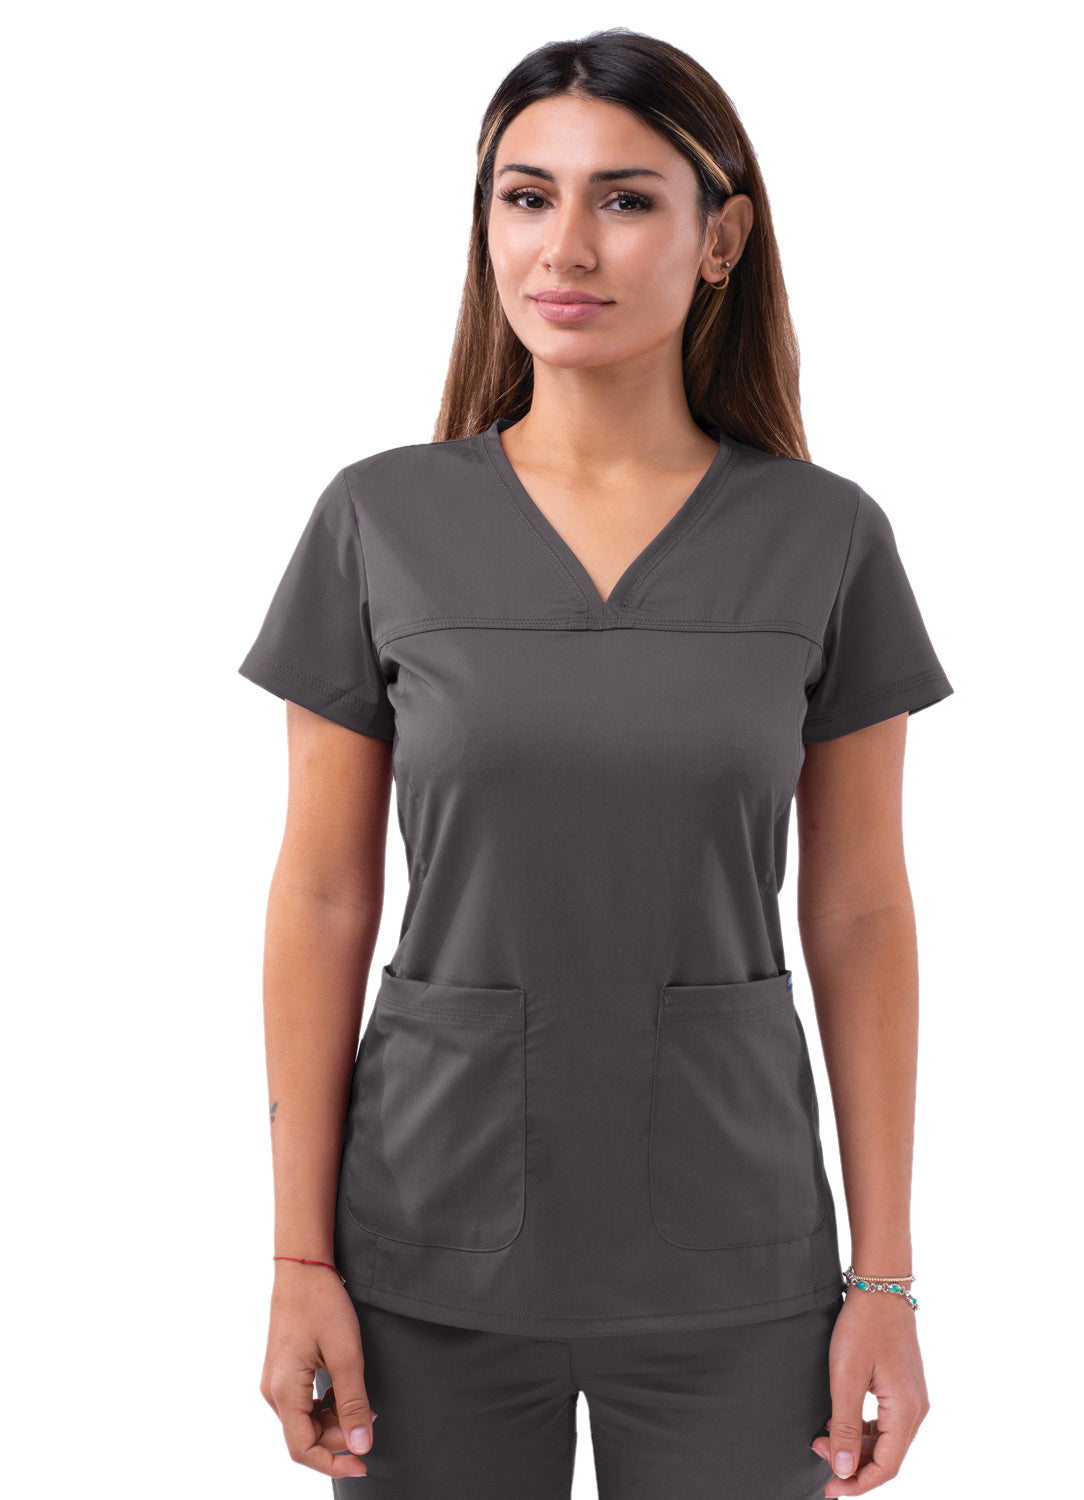 Adar Women's Sweetheart V-Neck Scrub Top